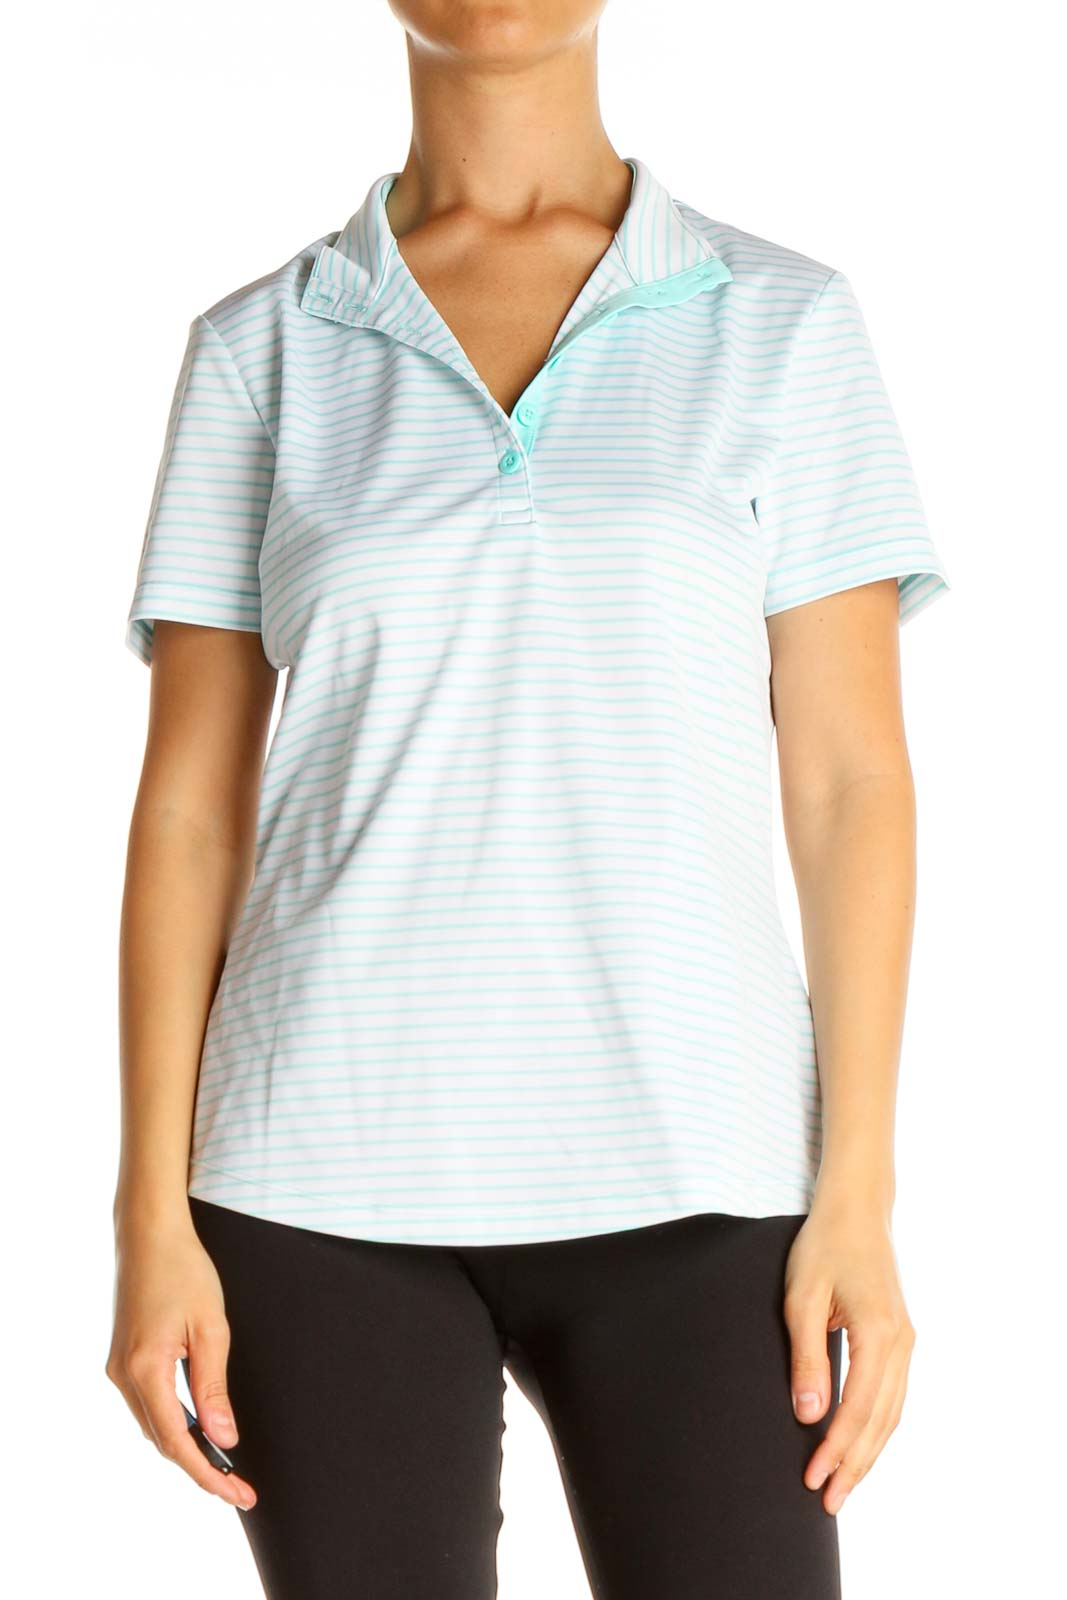 Blue Striped Casual Polo Shirt Front